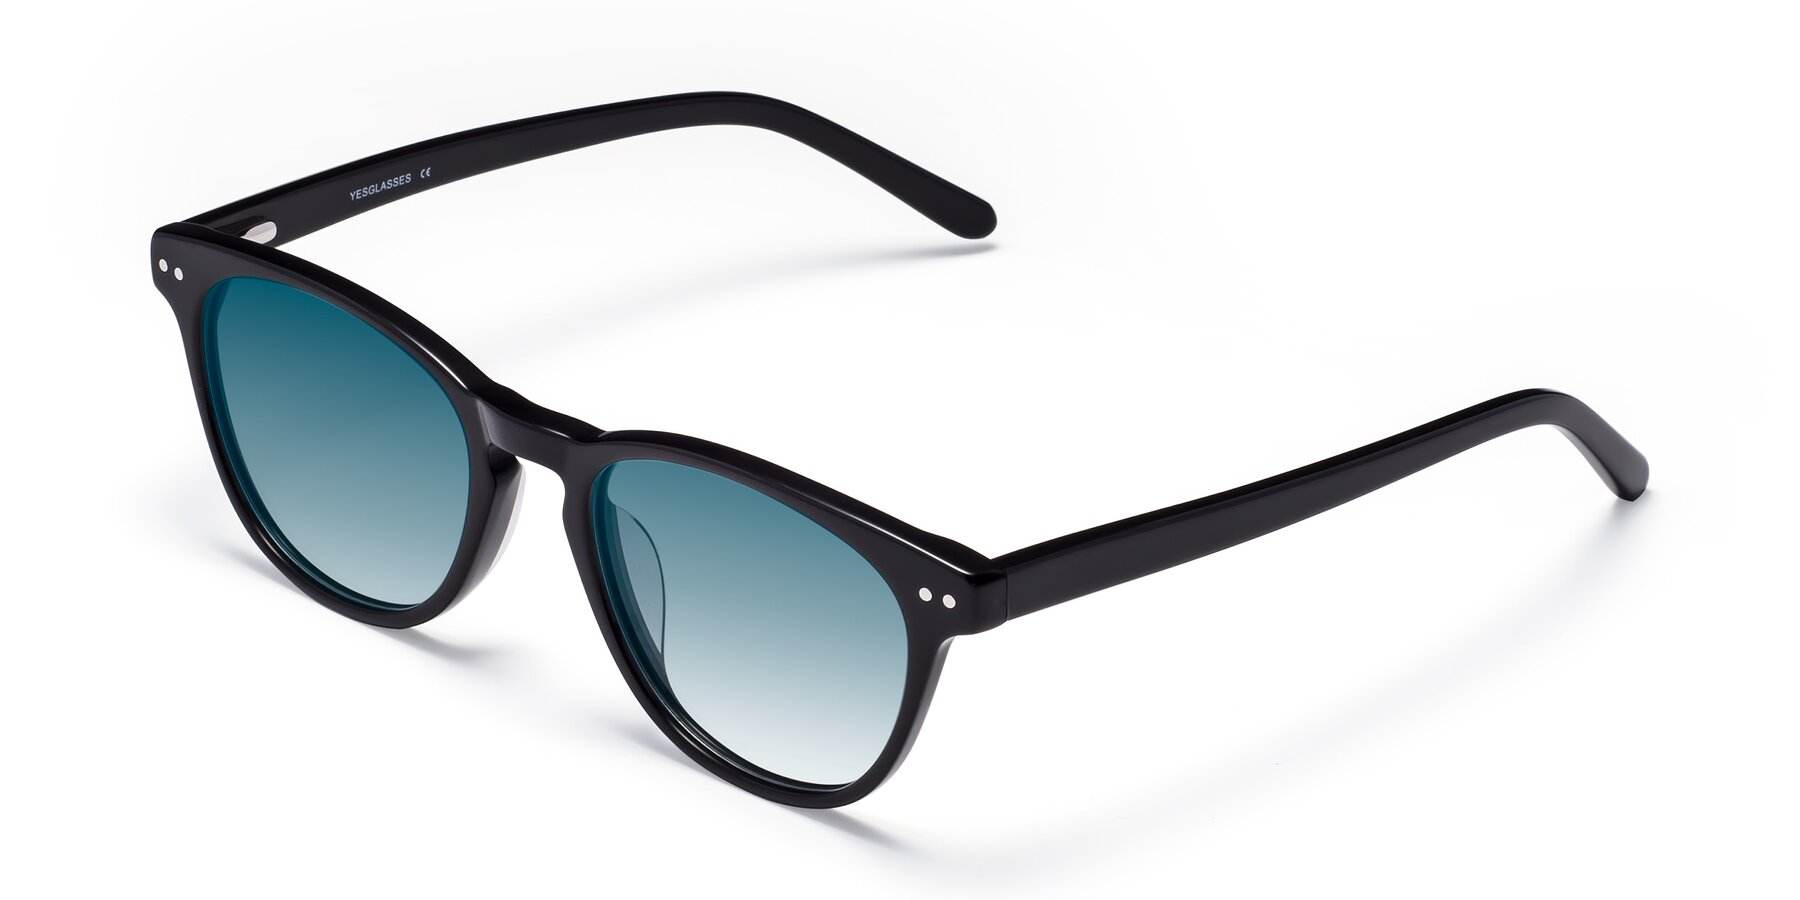 Angle of Blaze in Black with Blue Gradient Lenses